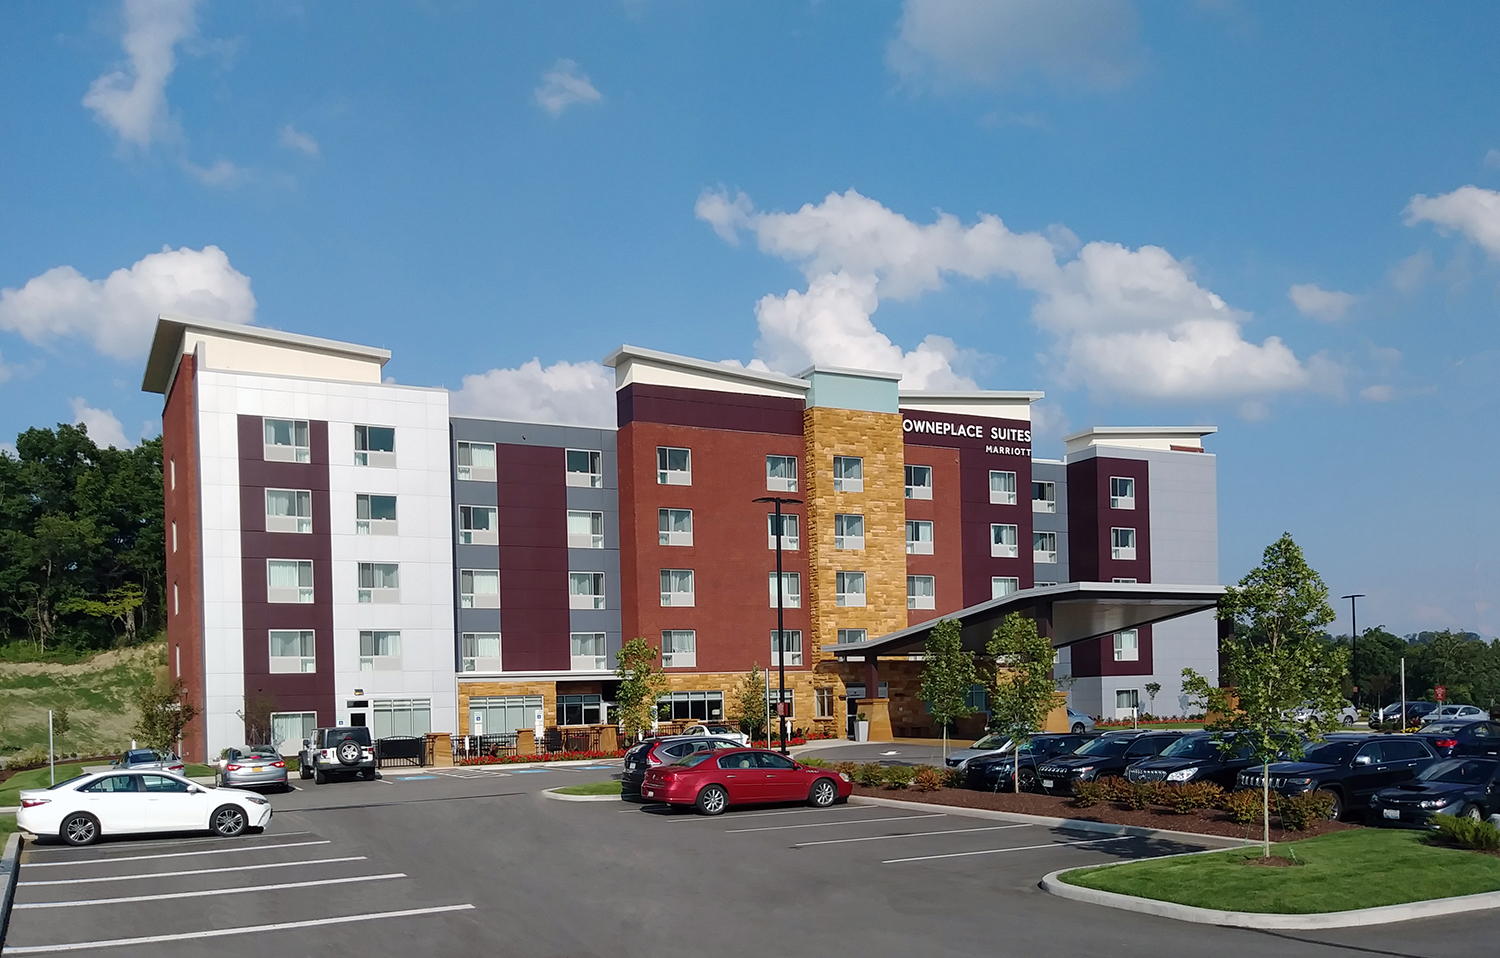 Townplace Suites Cranberry PA - V1 Flattened.jpg